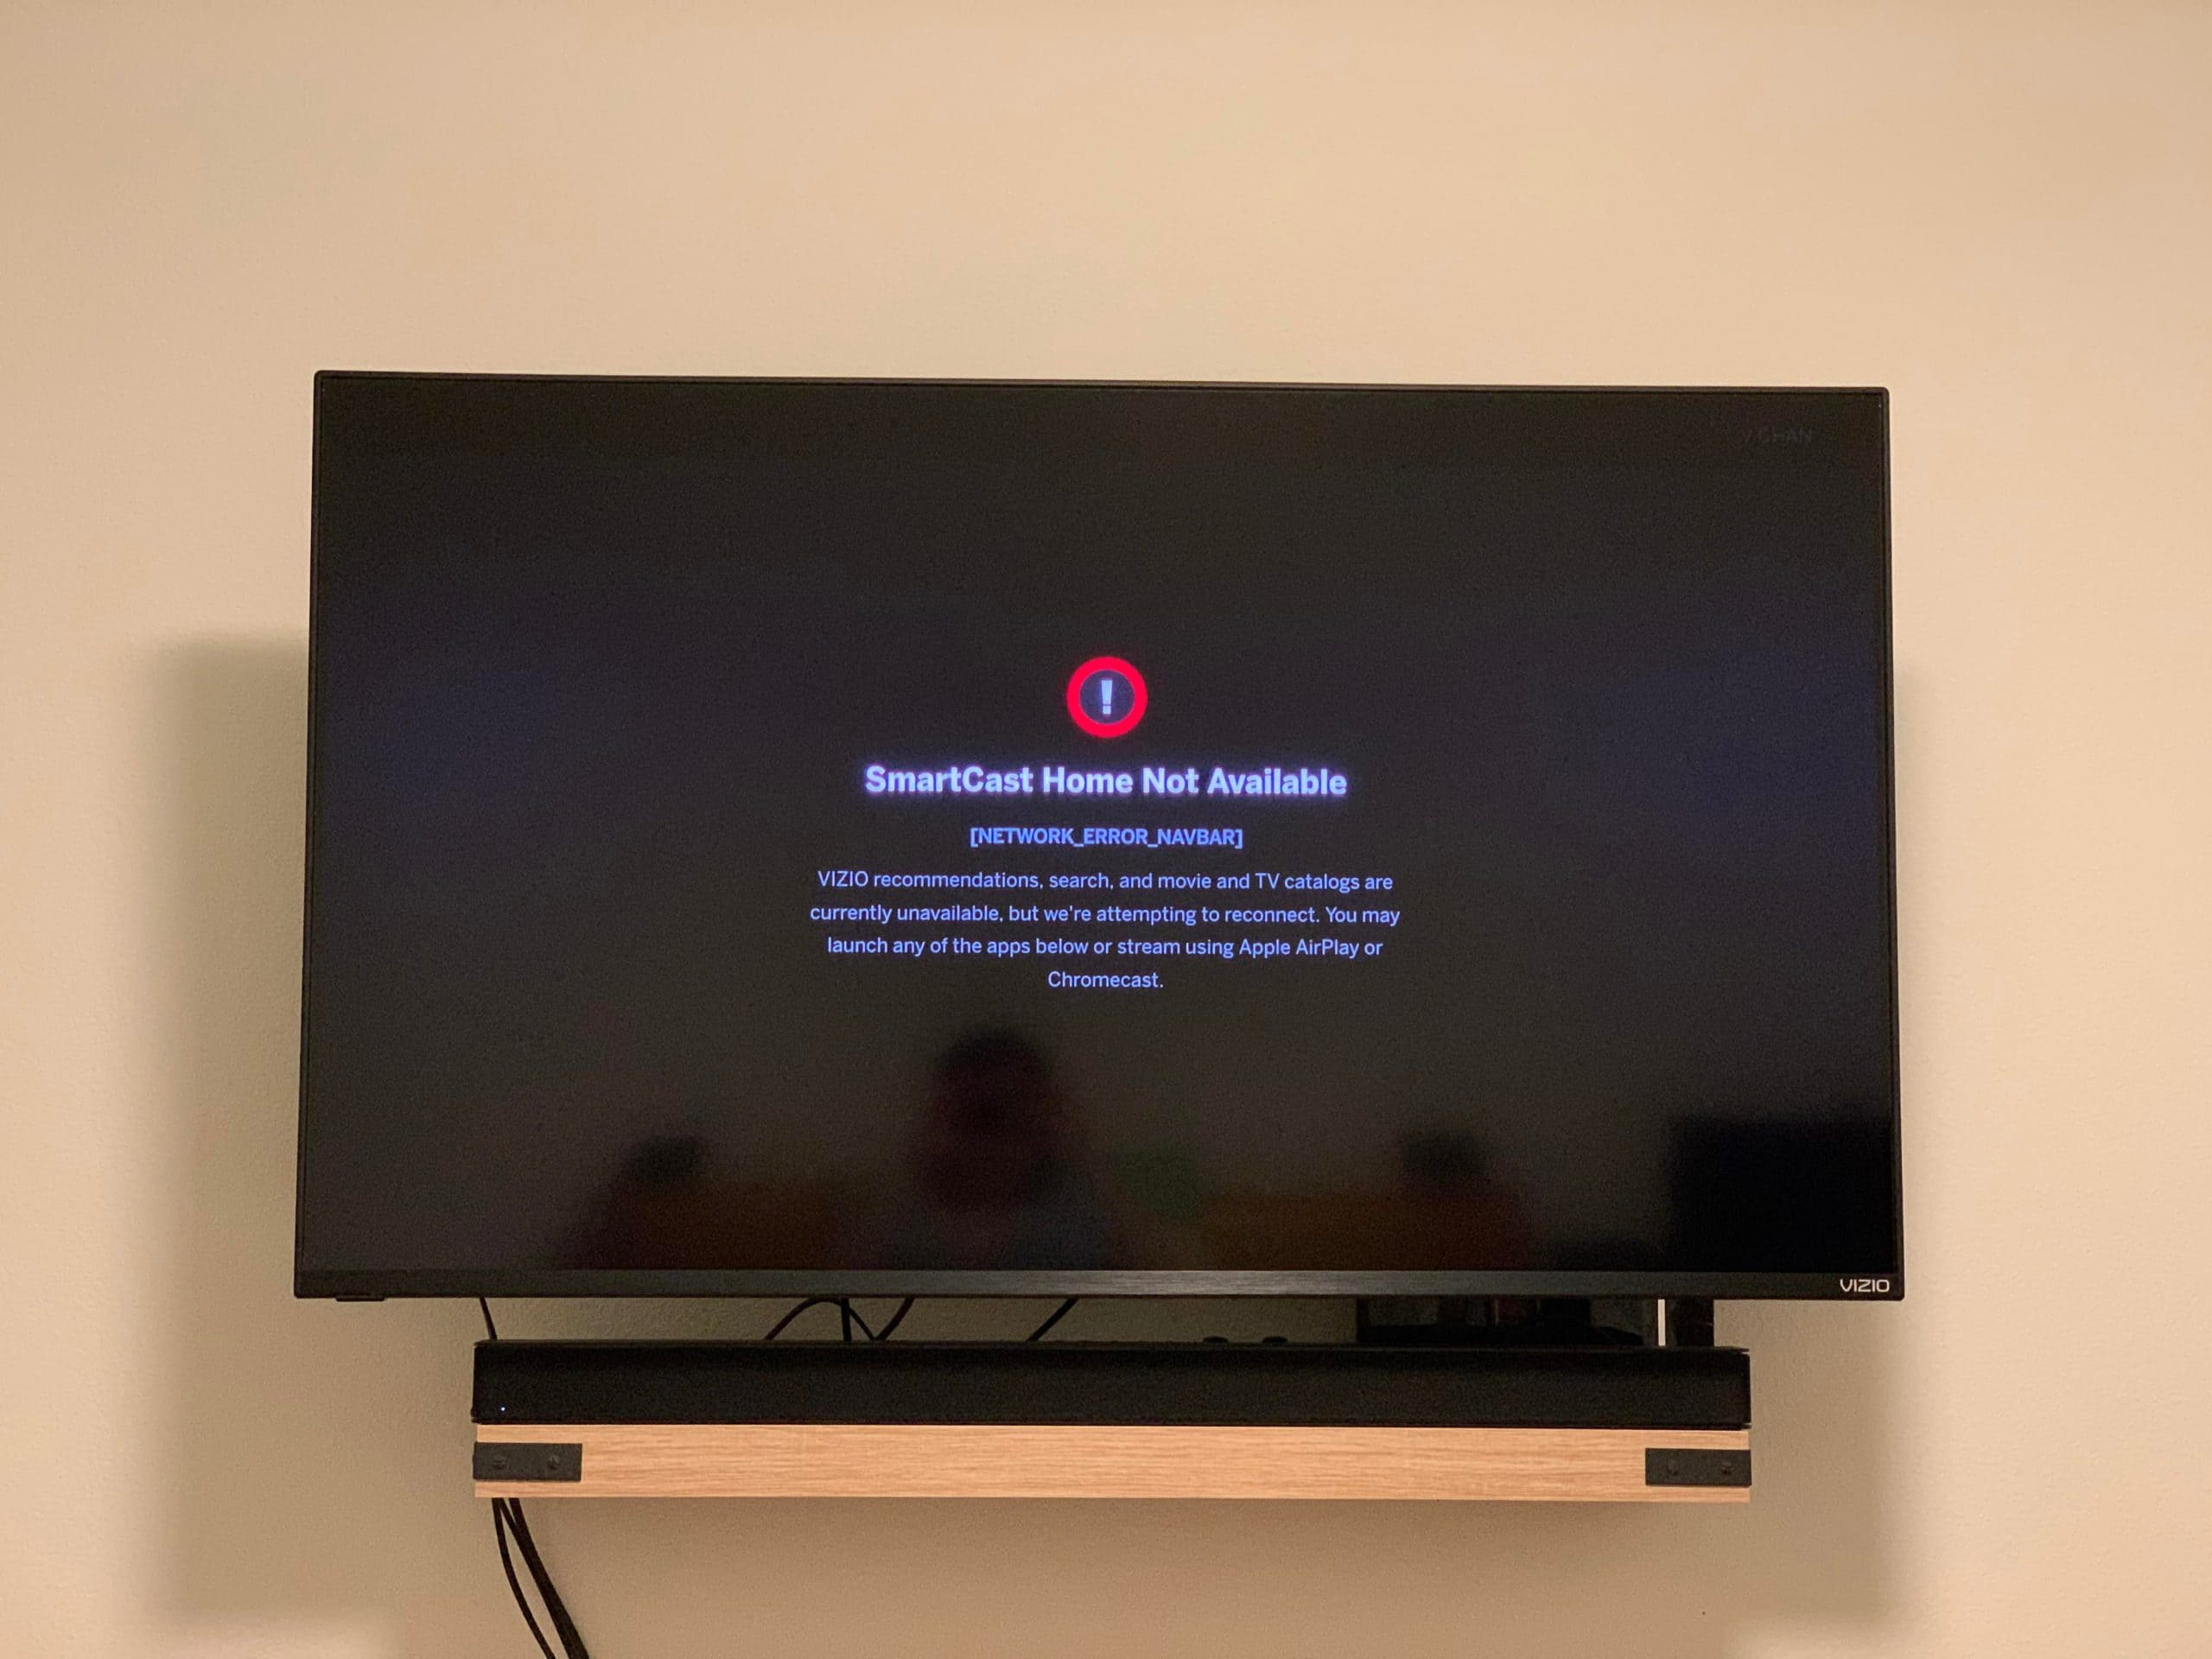 Vizio SmartCast TV Not Available error